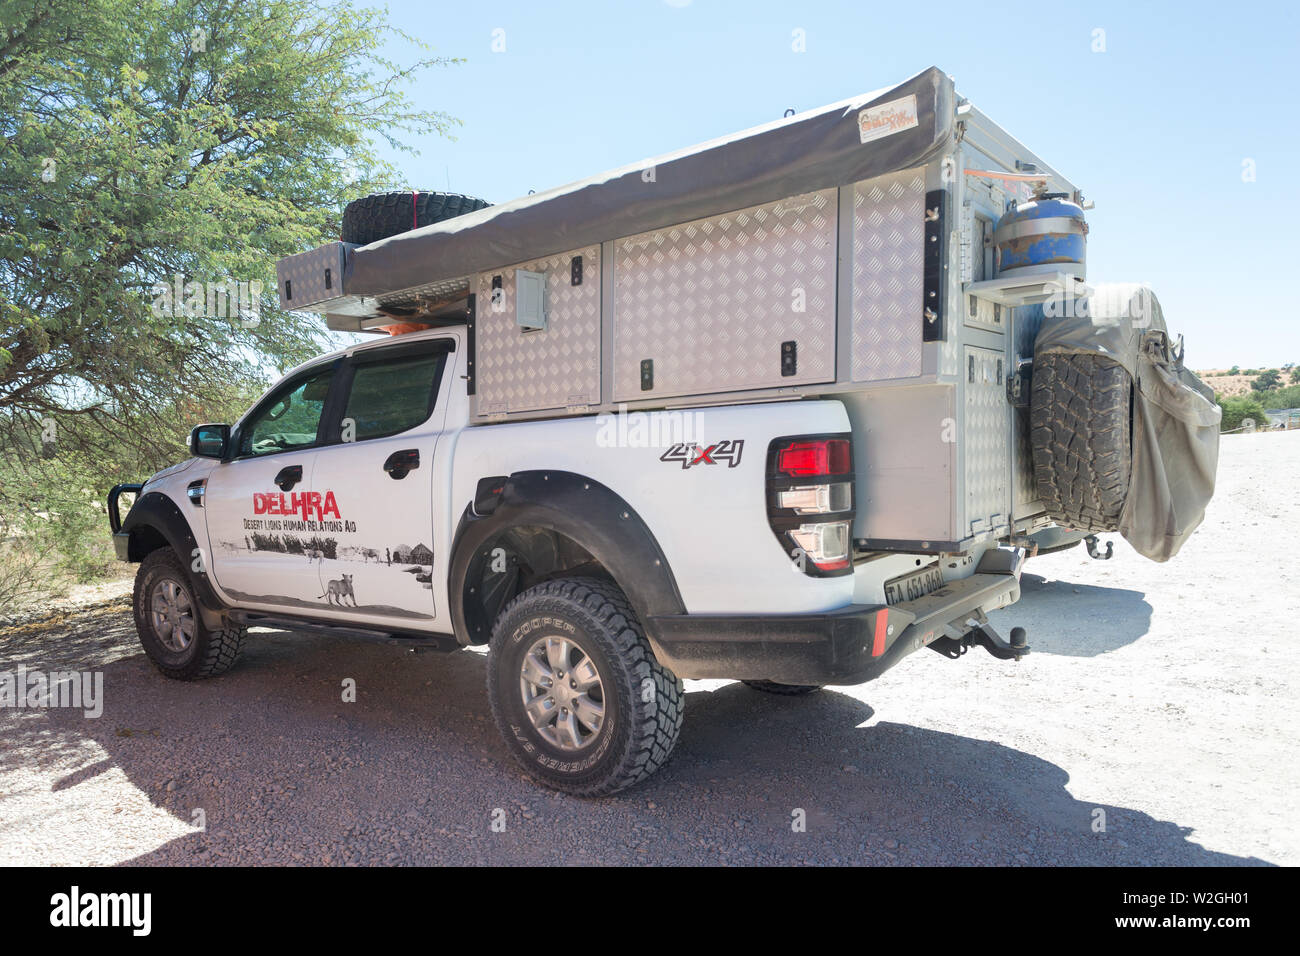 4x4 overland off road vehicle or truck with text DELHRA desert lions human relations aid, a non profit organisation dealing in human animal conflict Stock Photo